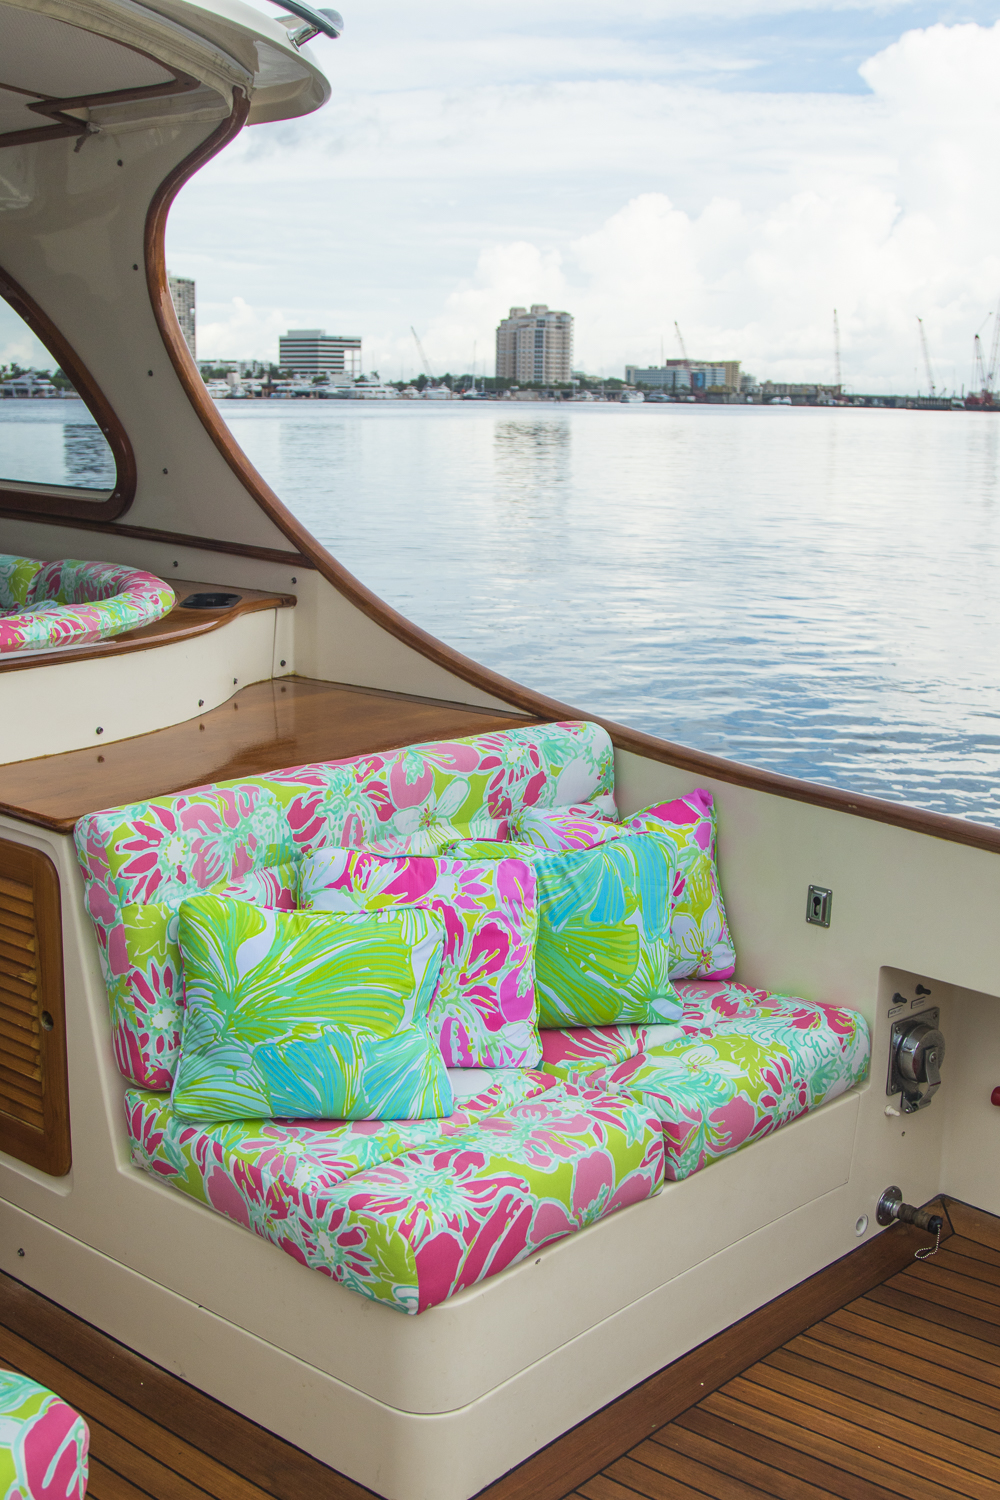 (Photo: Courtesy Lilly Pulitzer).